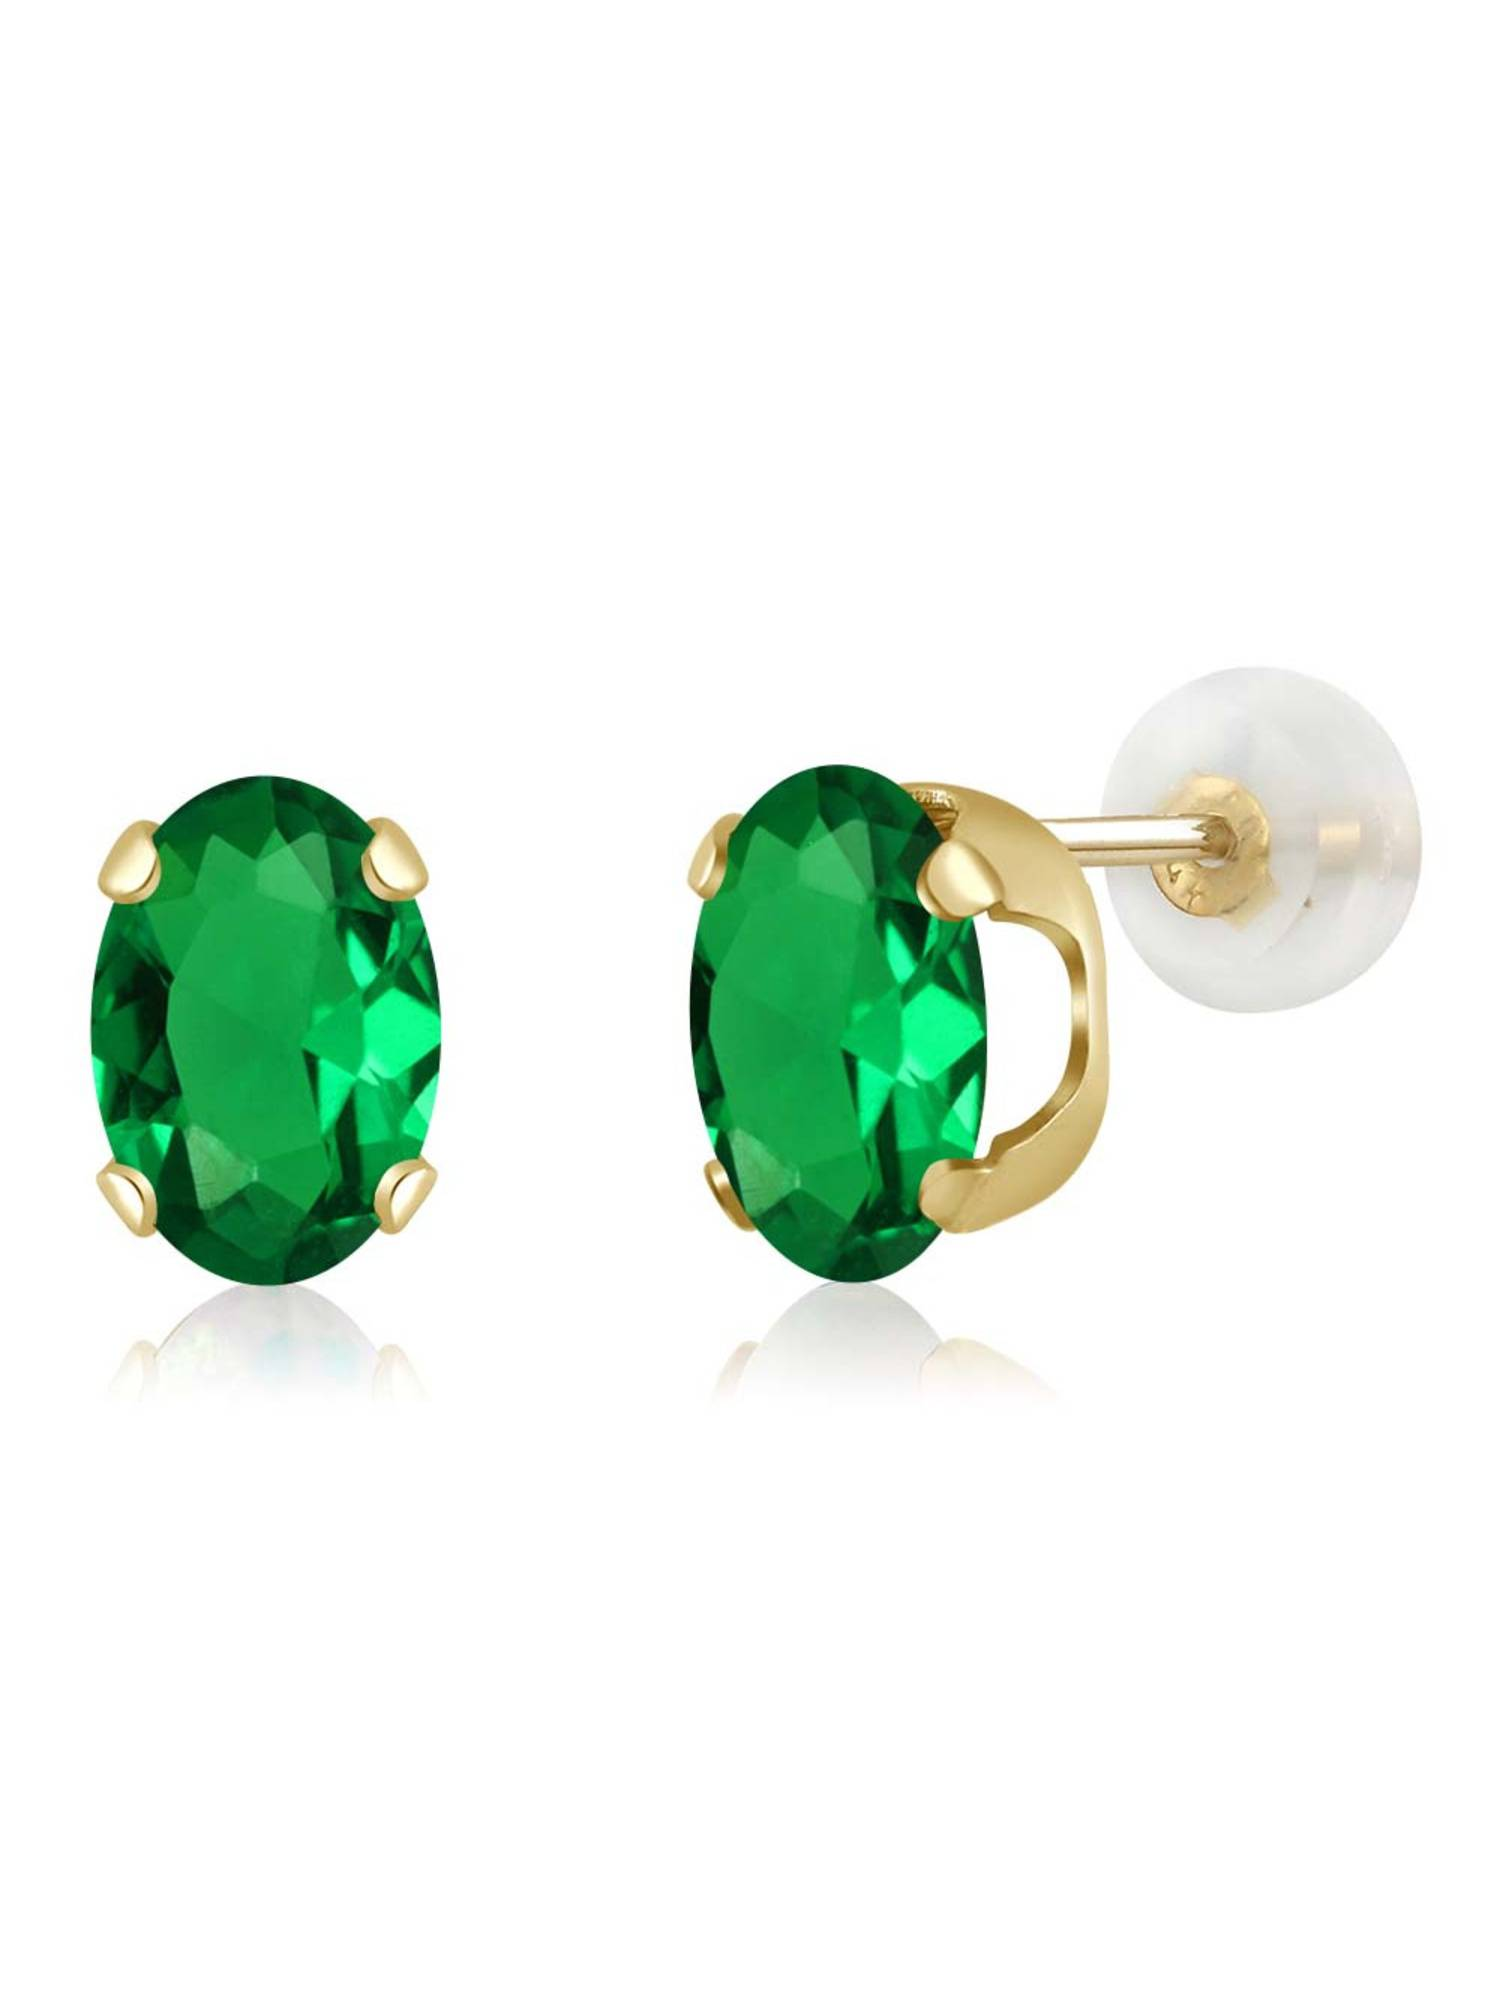 1.20 Ct Oval 7x5mm Green Simulated Emerald 14K Yellow Gold Stud Earrings